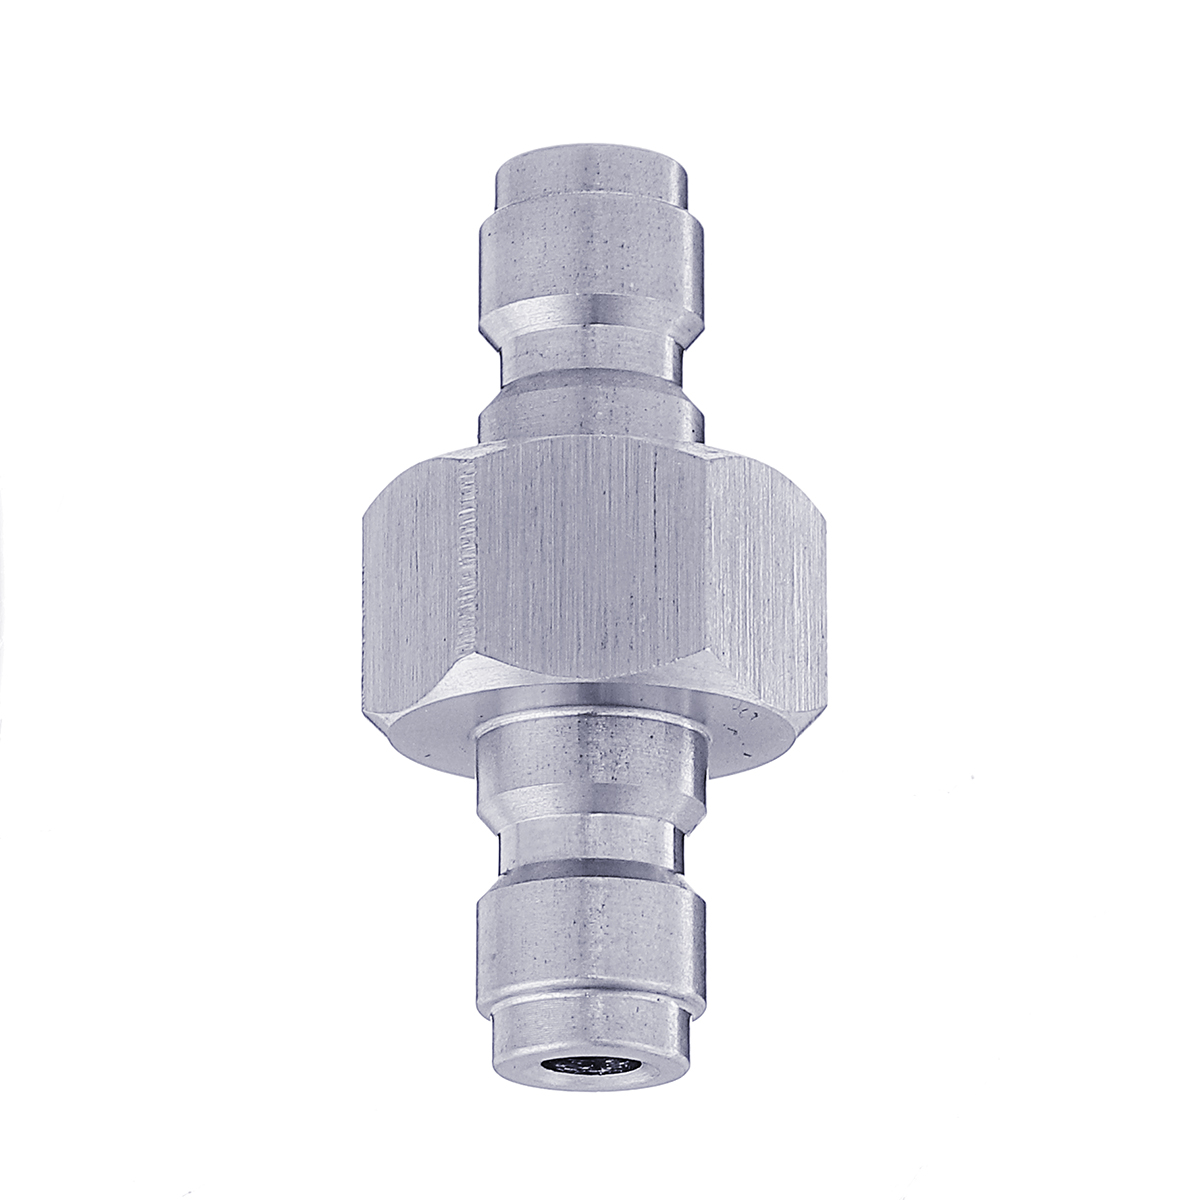 ! Stainless Steel Double Male to Male Connect Adaptor For Foster Paintball